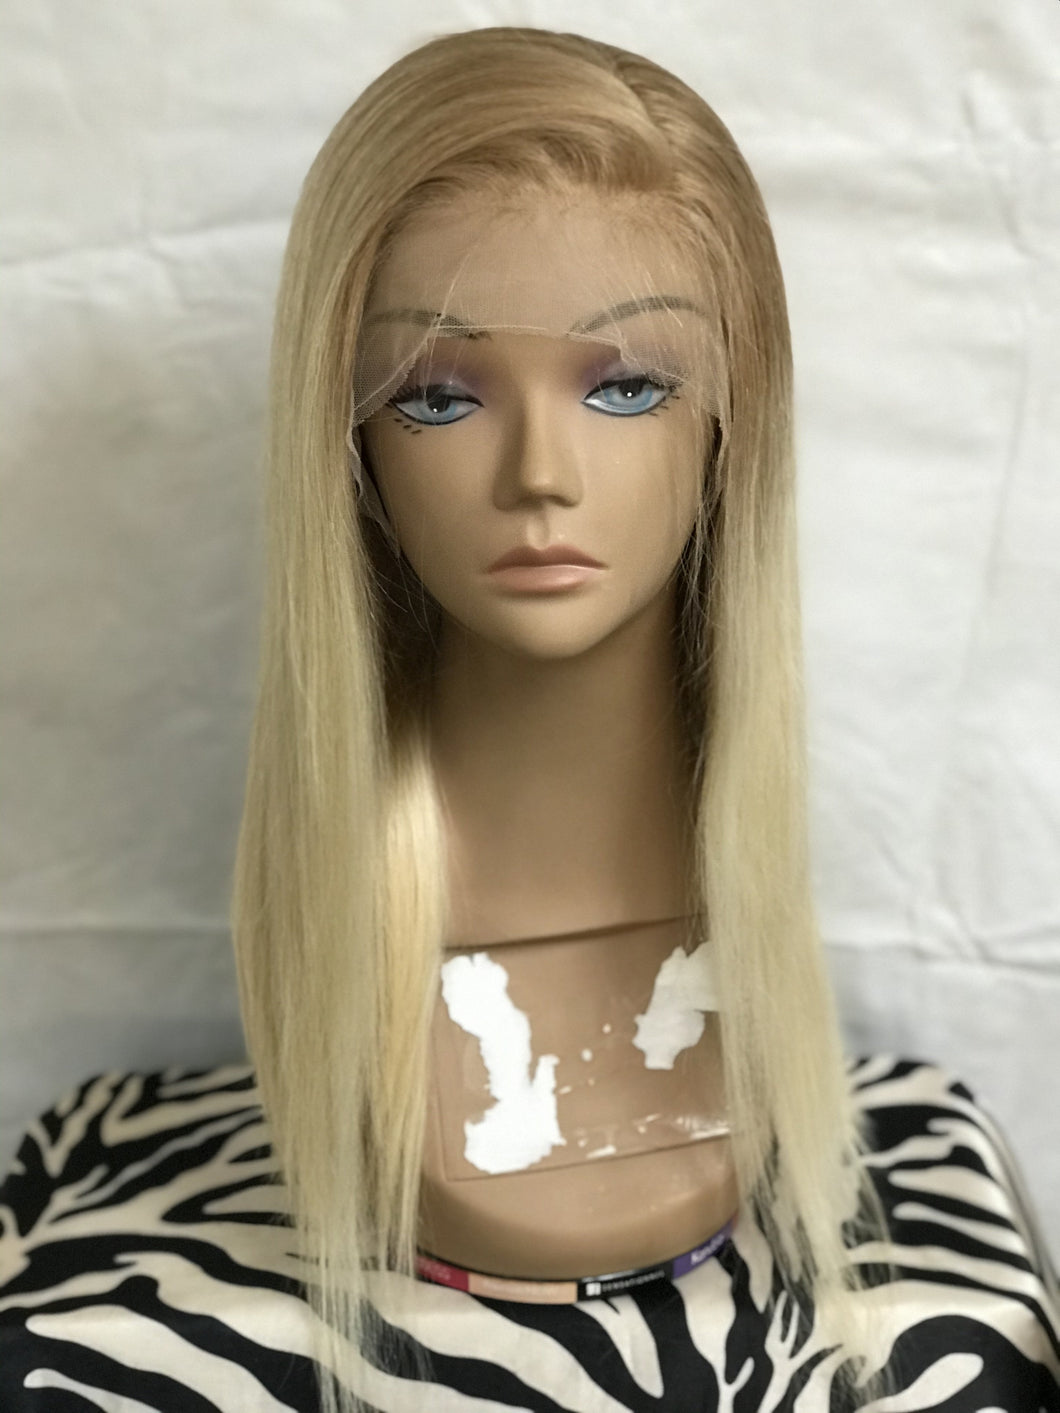 Ombre Blonde Lace Front Wig Straight Human Hair Wig 2 Tones Golden Brown to Bleached Blonde 613 Pre Plucked Hairline with Baby Hair 150% Density for Women Glueless 13x4 Lace Wig Bleached Knots16